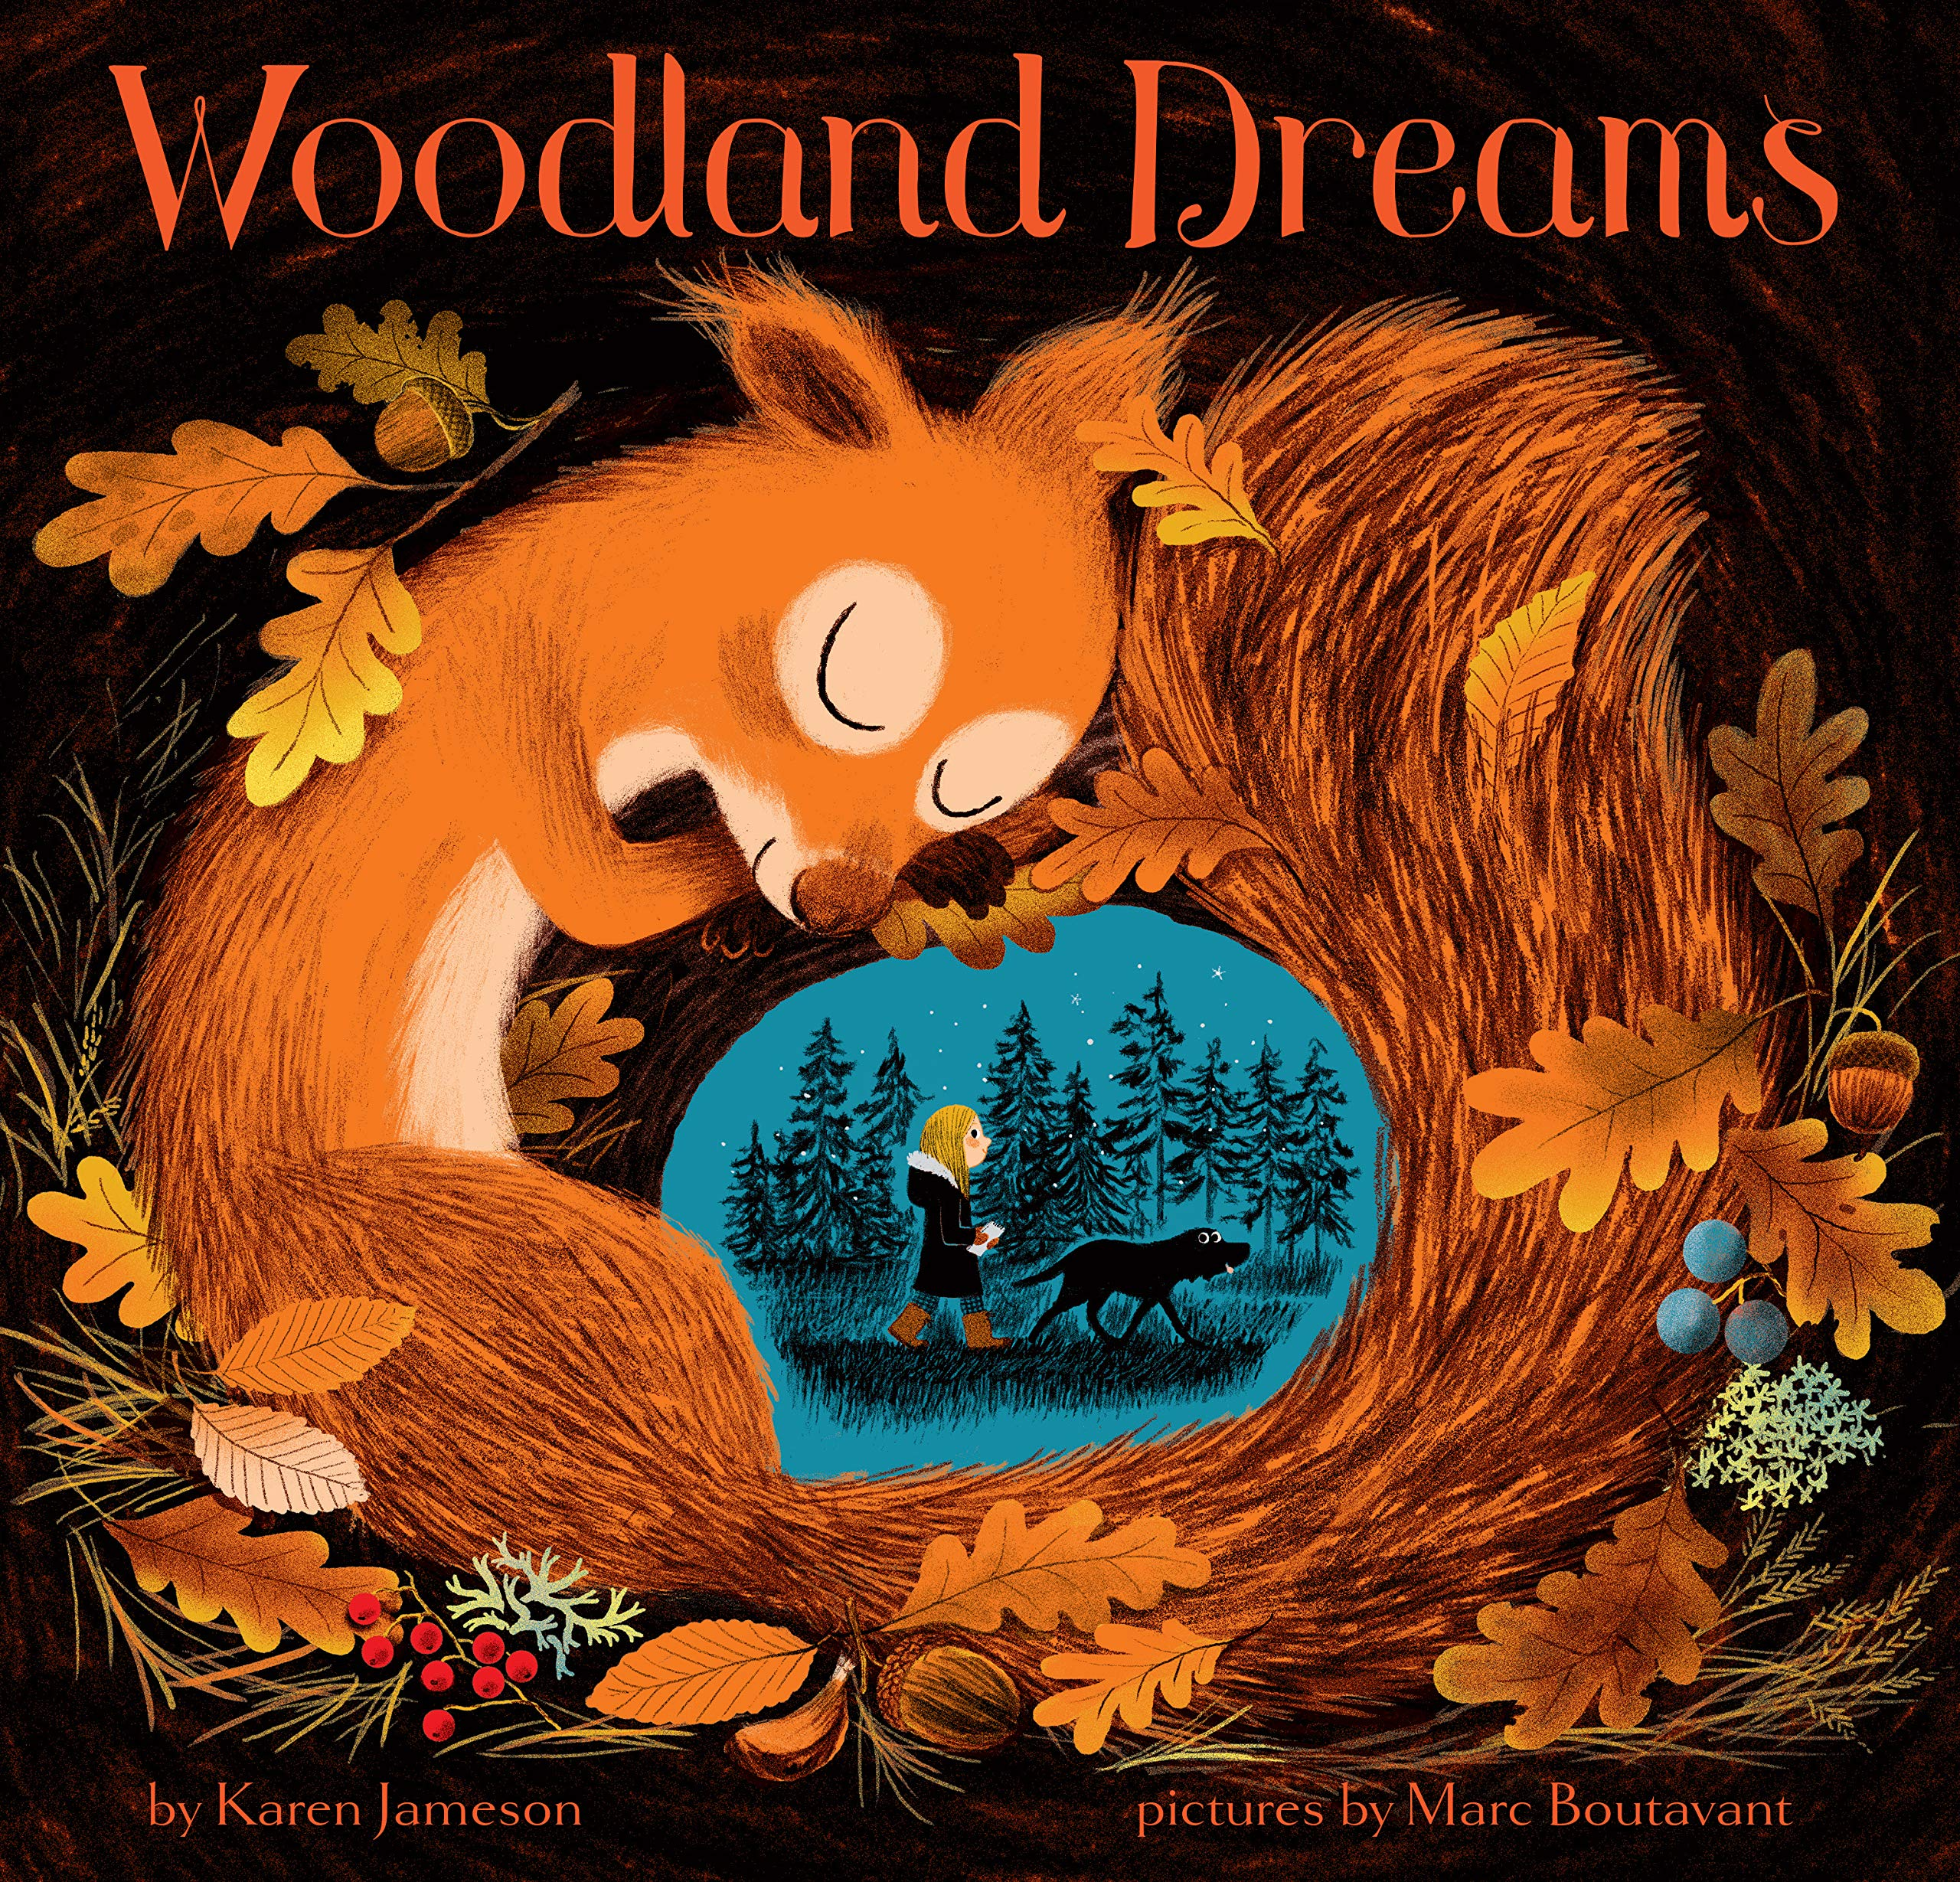 A picture book cover depicting an orange squirrel against a black background, curled around a vignette of a girl and her dog exploring the woods at twilight.